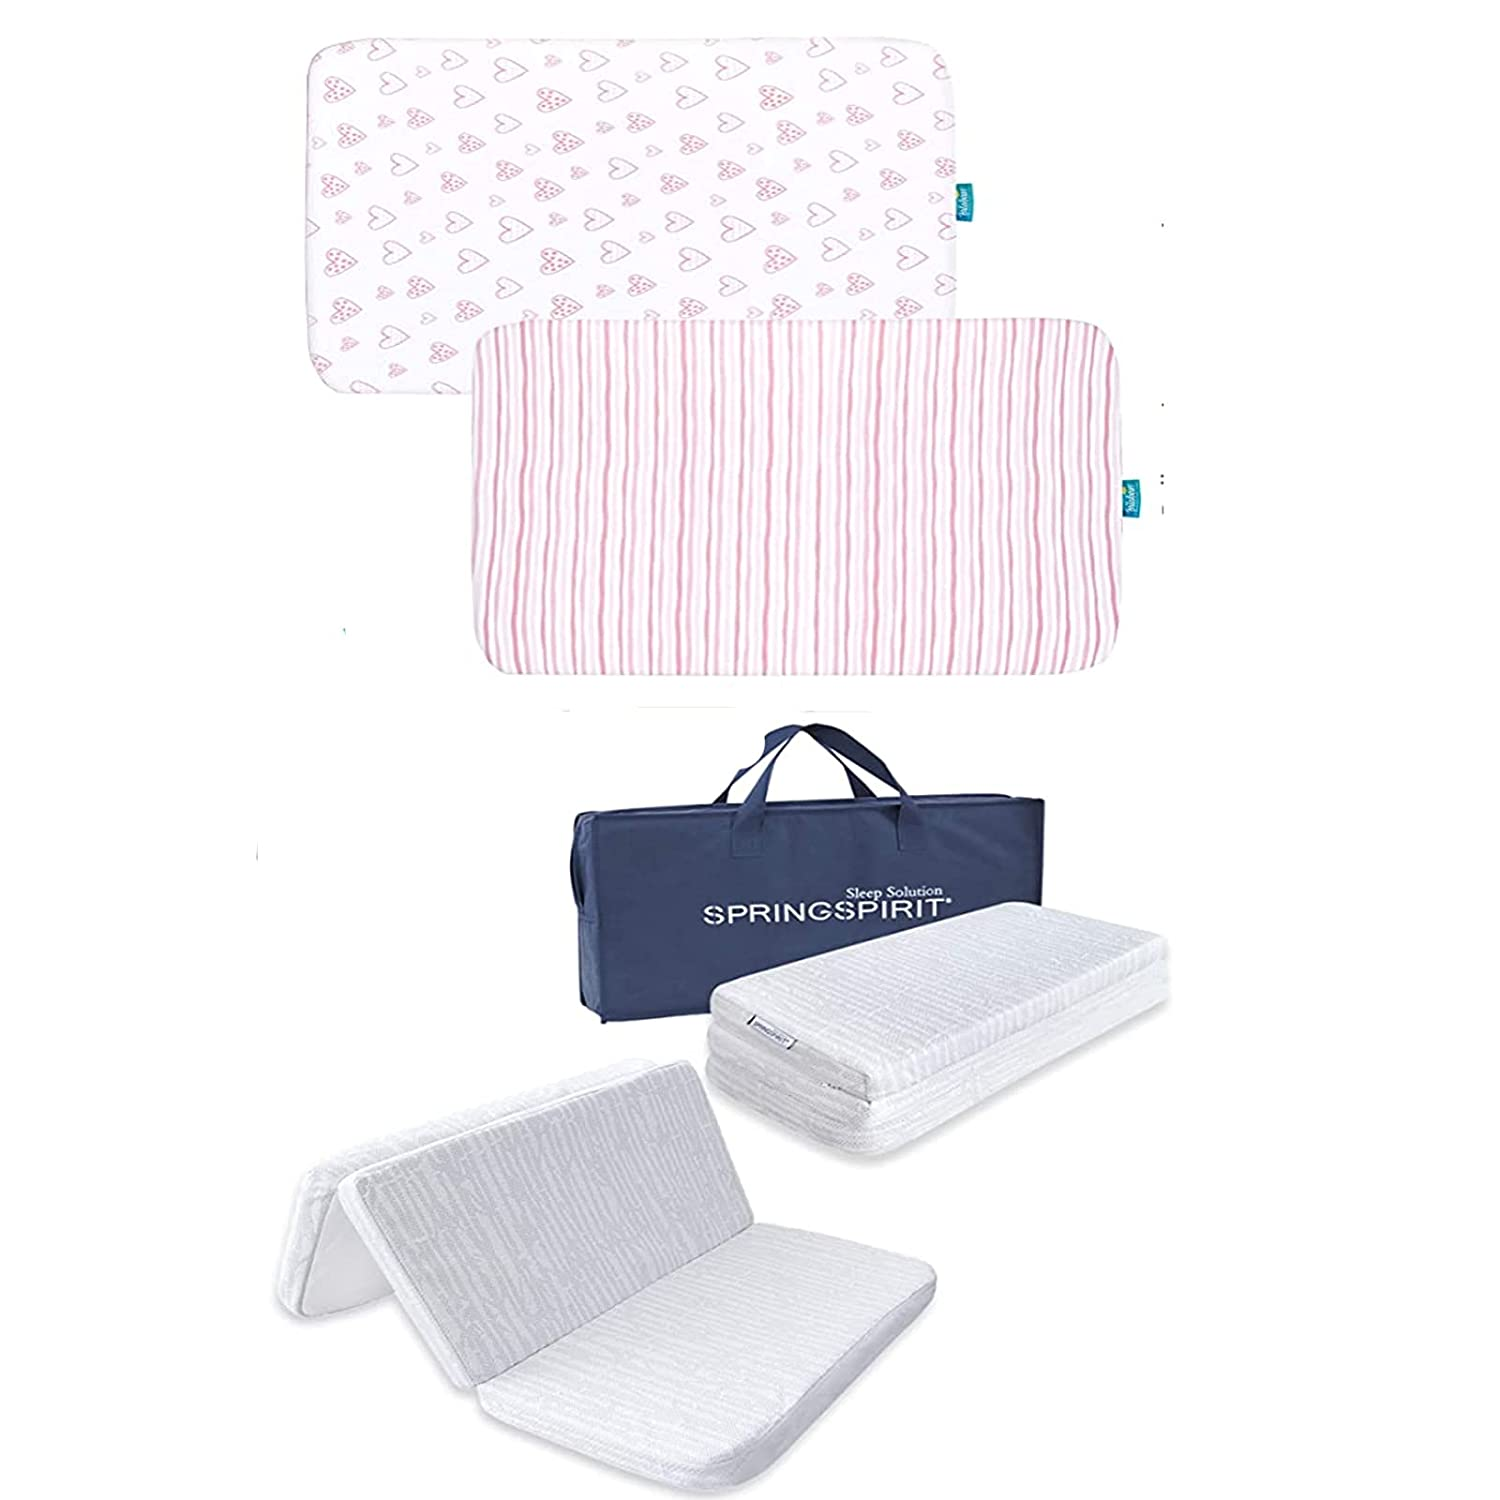 Pack New popularity and Play Sheets 2 with Trifold n Bamboo New Shipping Free Shipping Matt